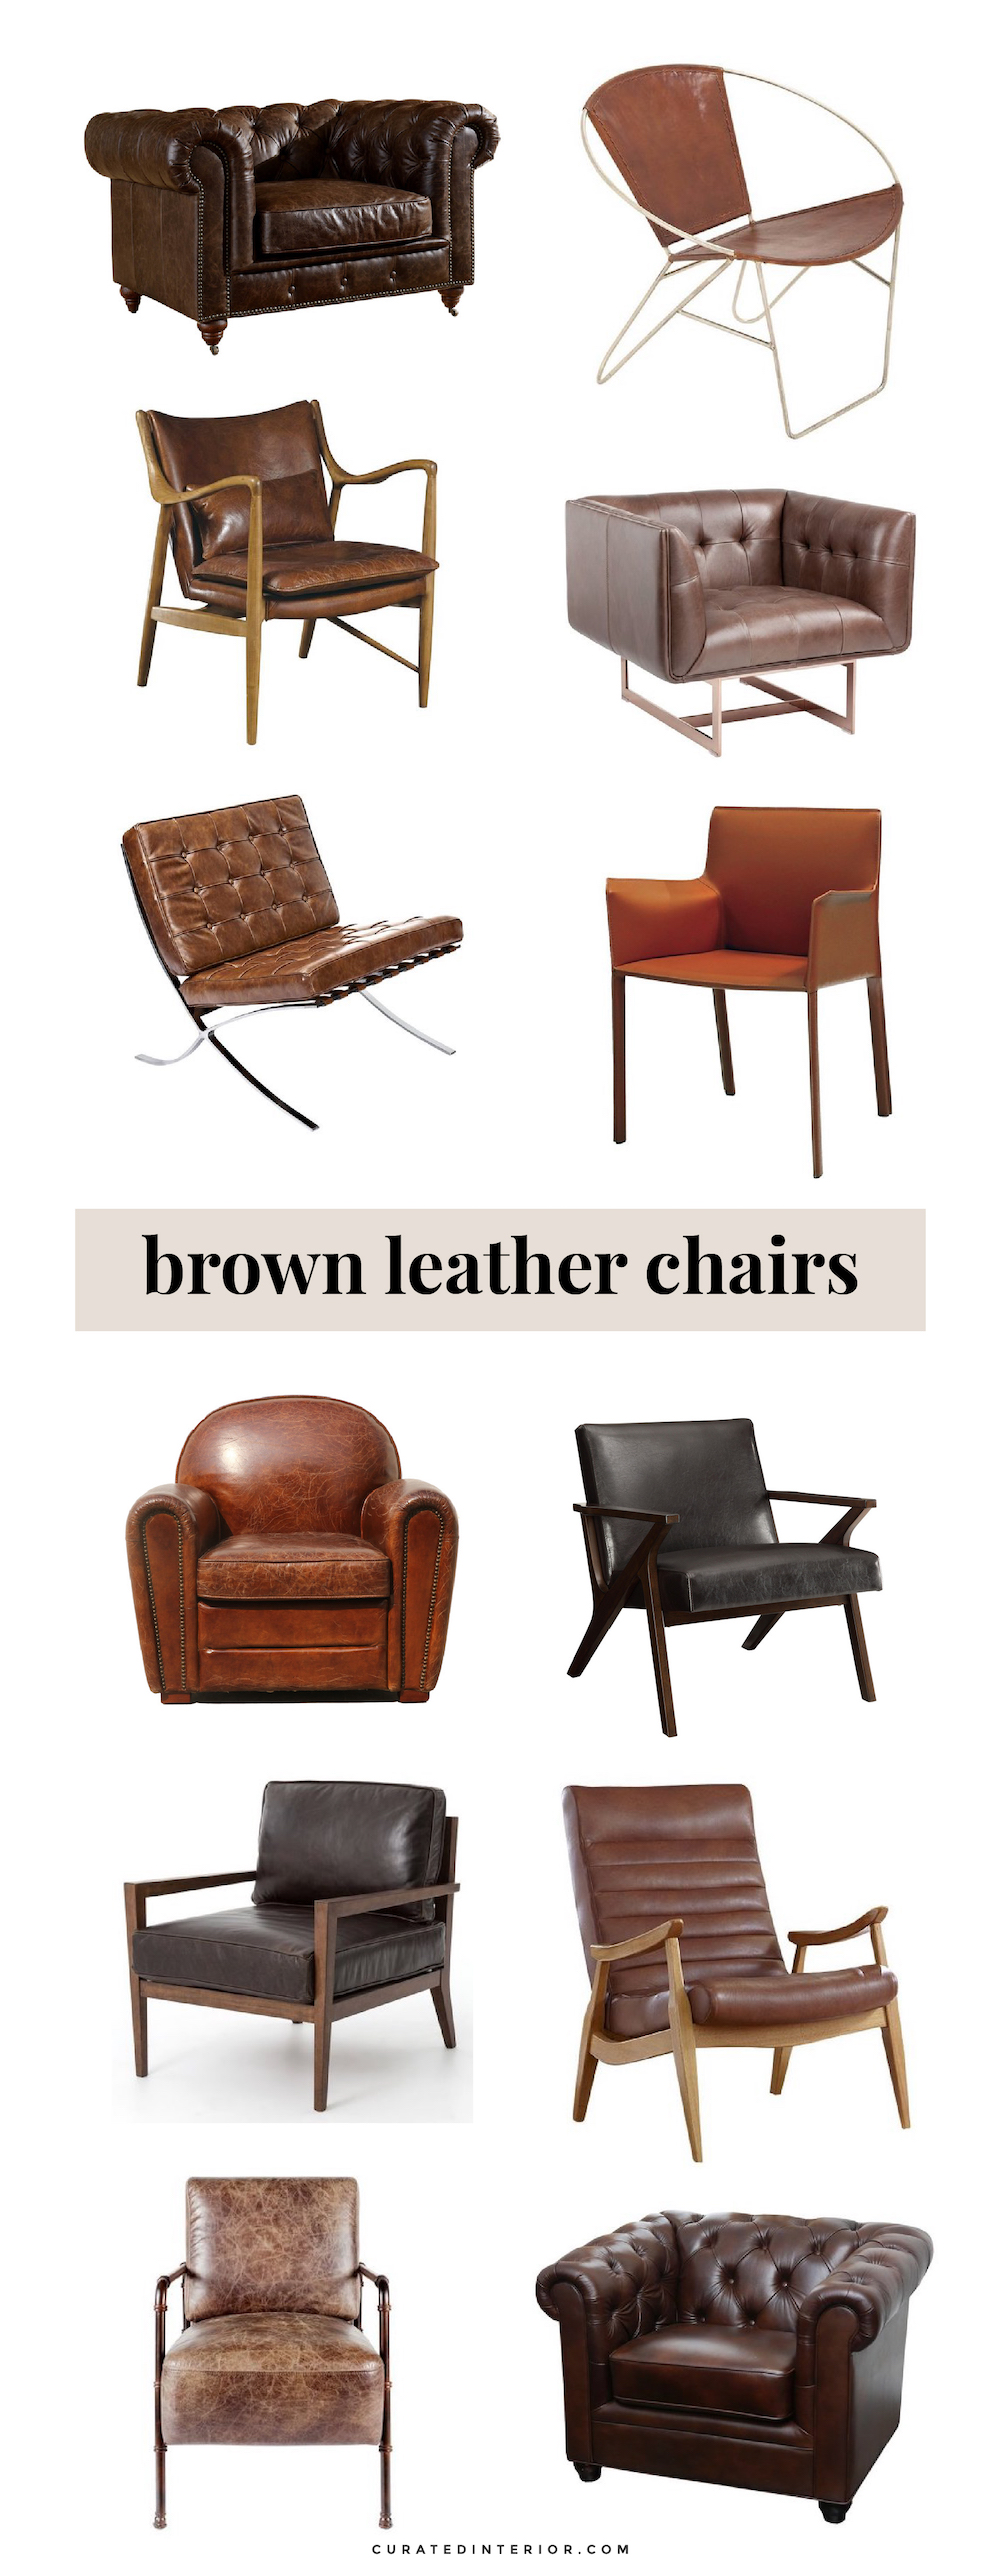 brown leather chairs, tan leather chairs, brown leather accent chairs, leather chairs living room, brown leather club chairs